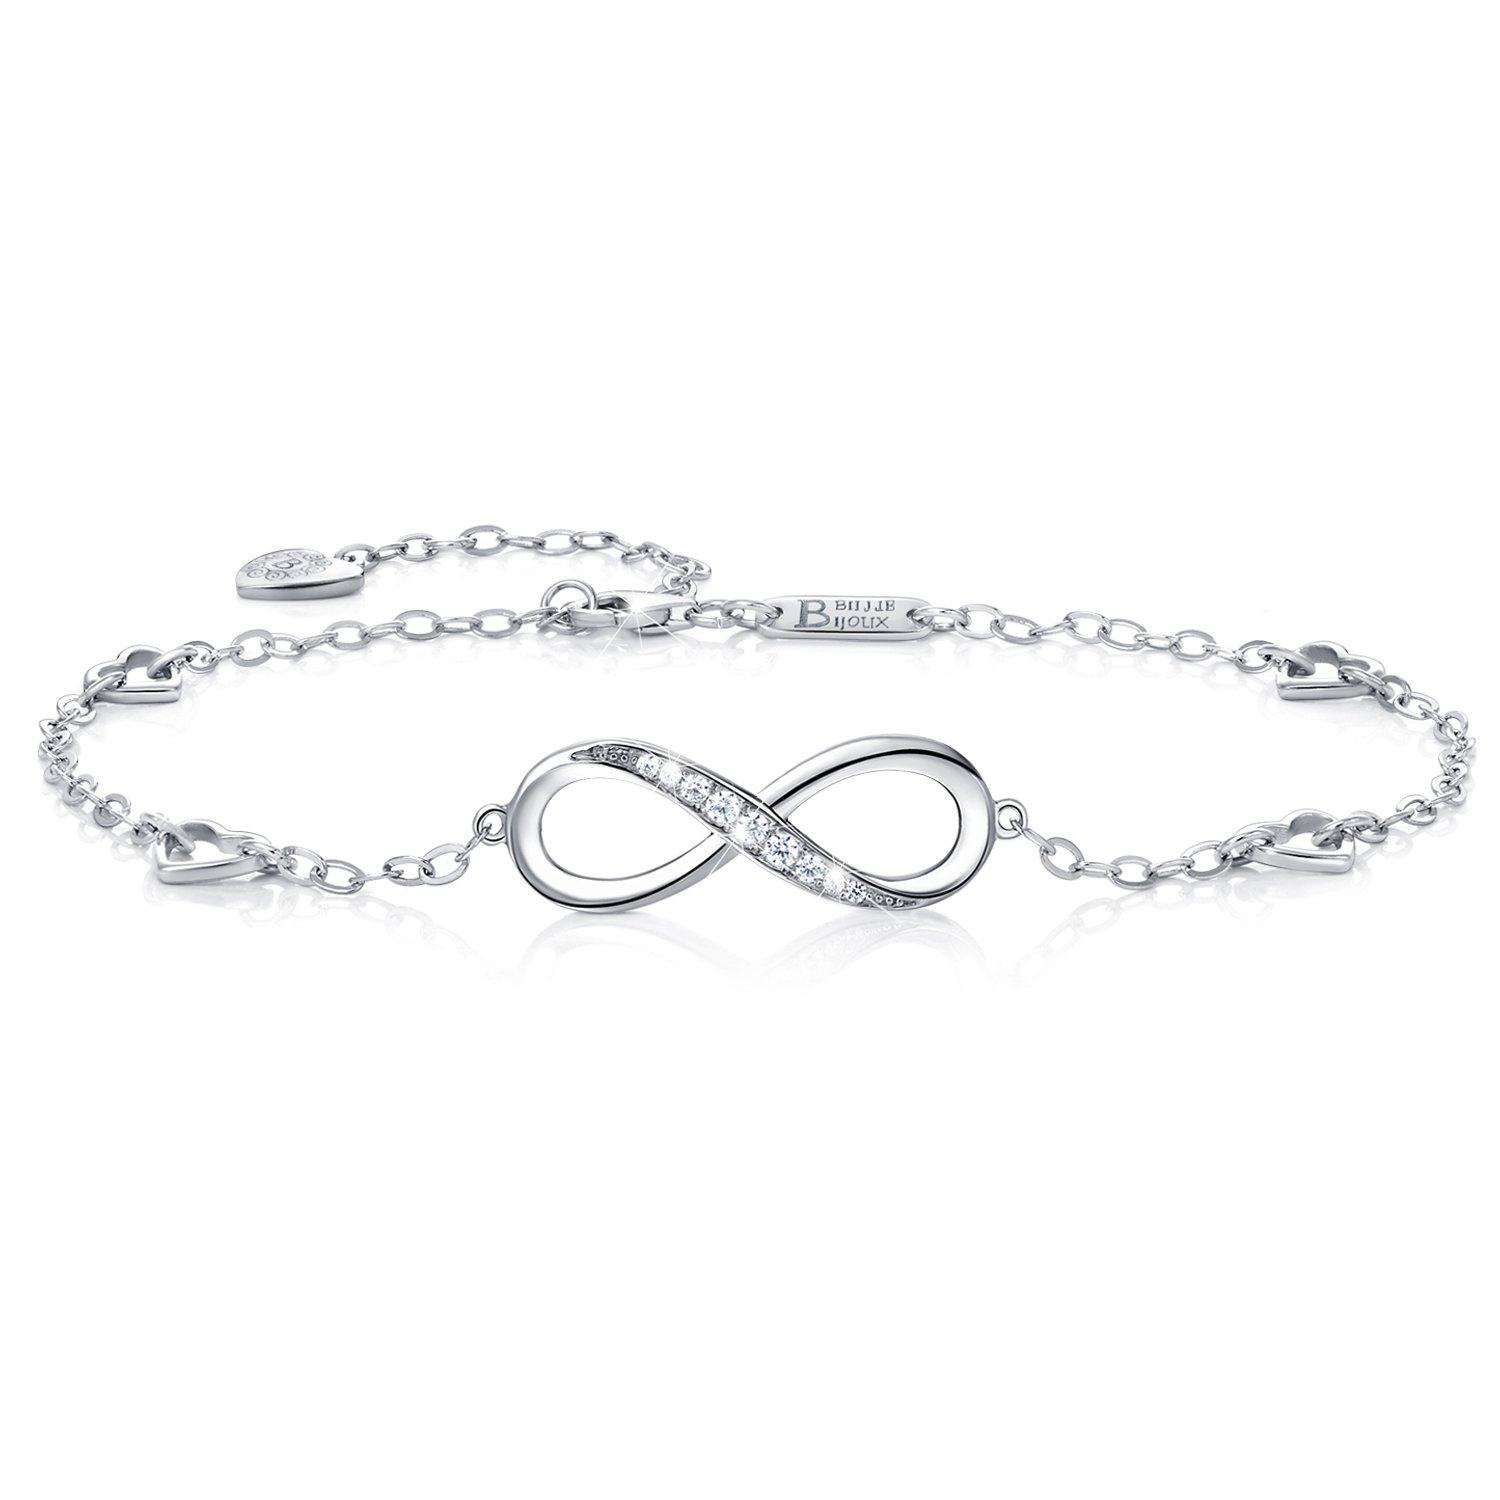 Gift for Christmas Day Womens 925 Sterling Silver Infinity Endless Love Symbol Charm Adjustable Anklet Bracelet, large bracelet- Billie Bijoux BBB004